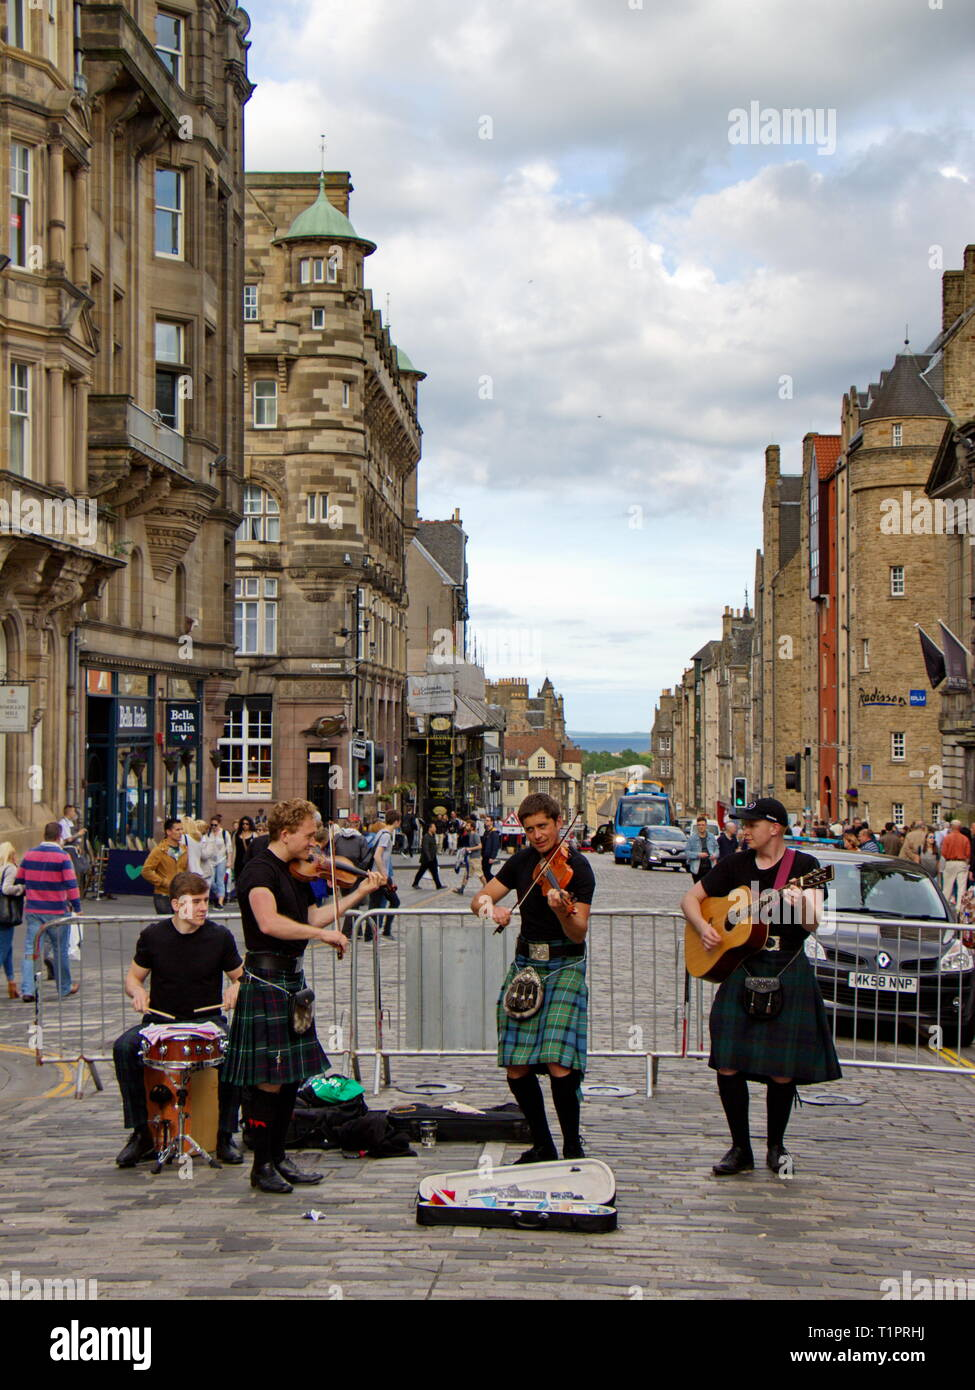 music band dressed in traditional skirts and playing on bagpipes on Royal mile street - Stock Image